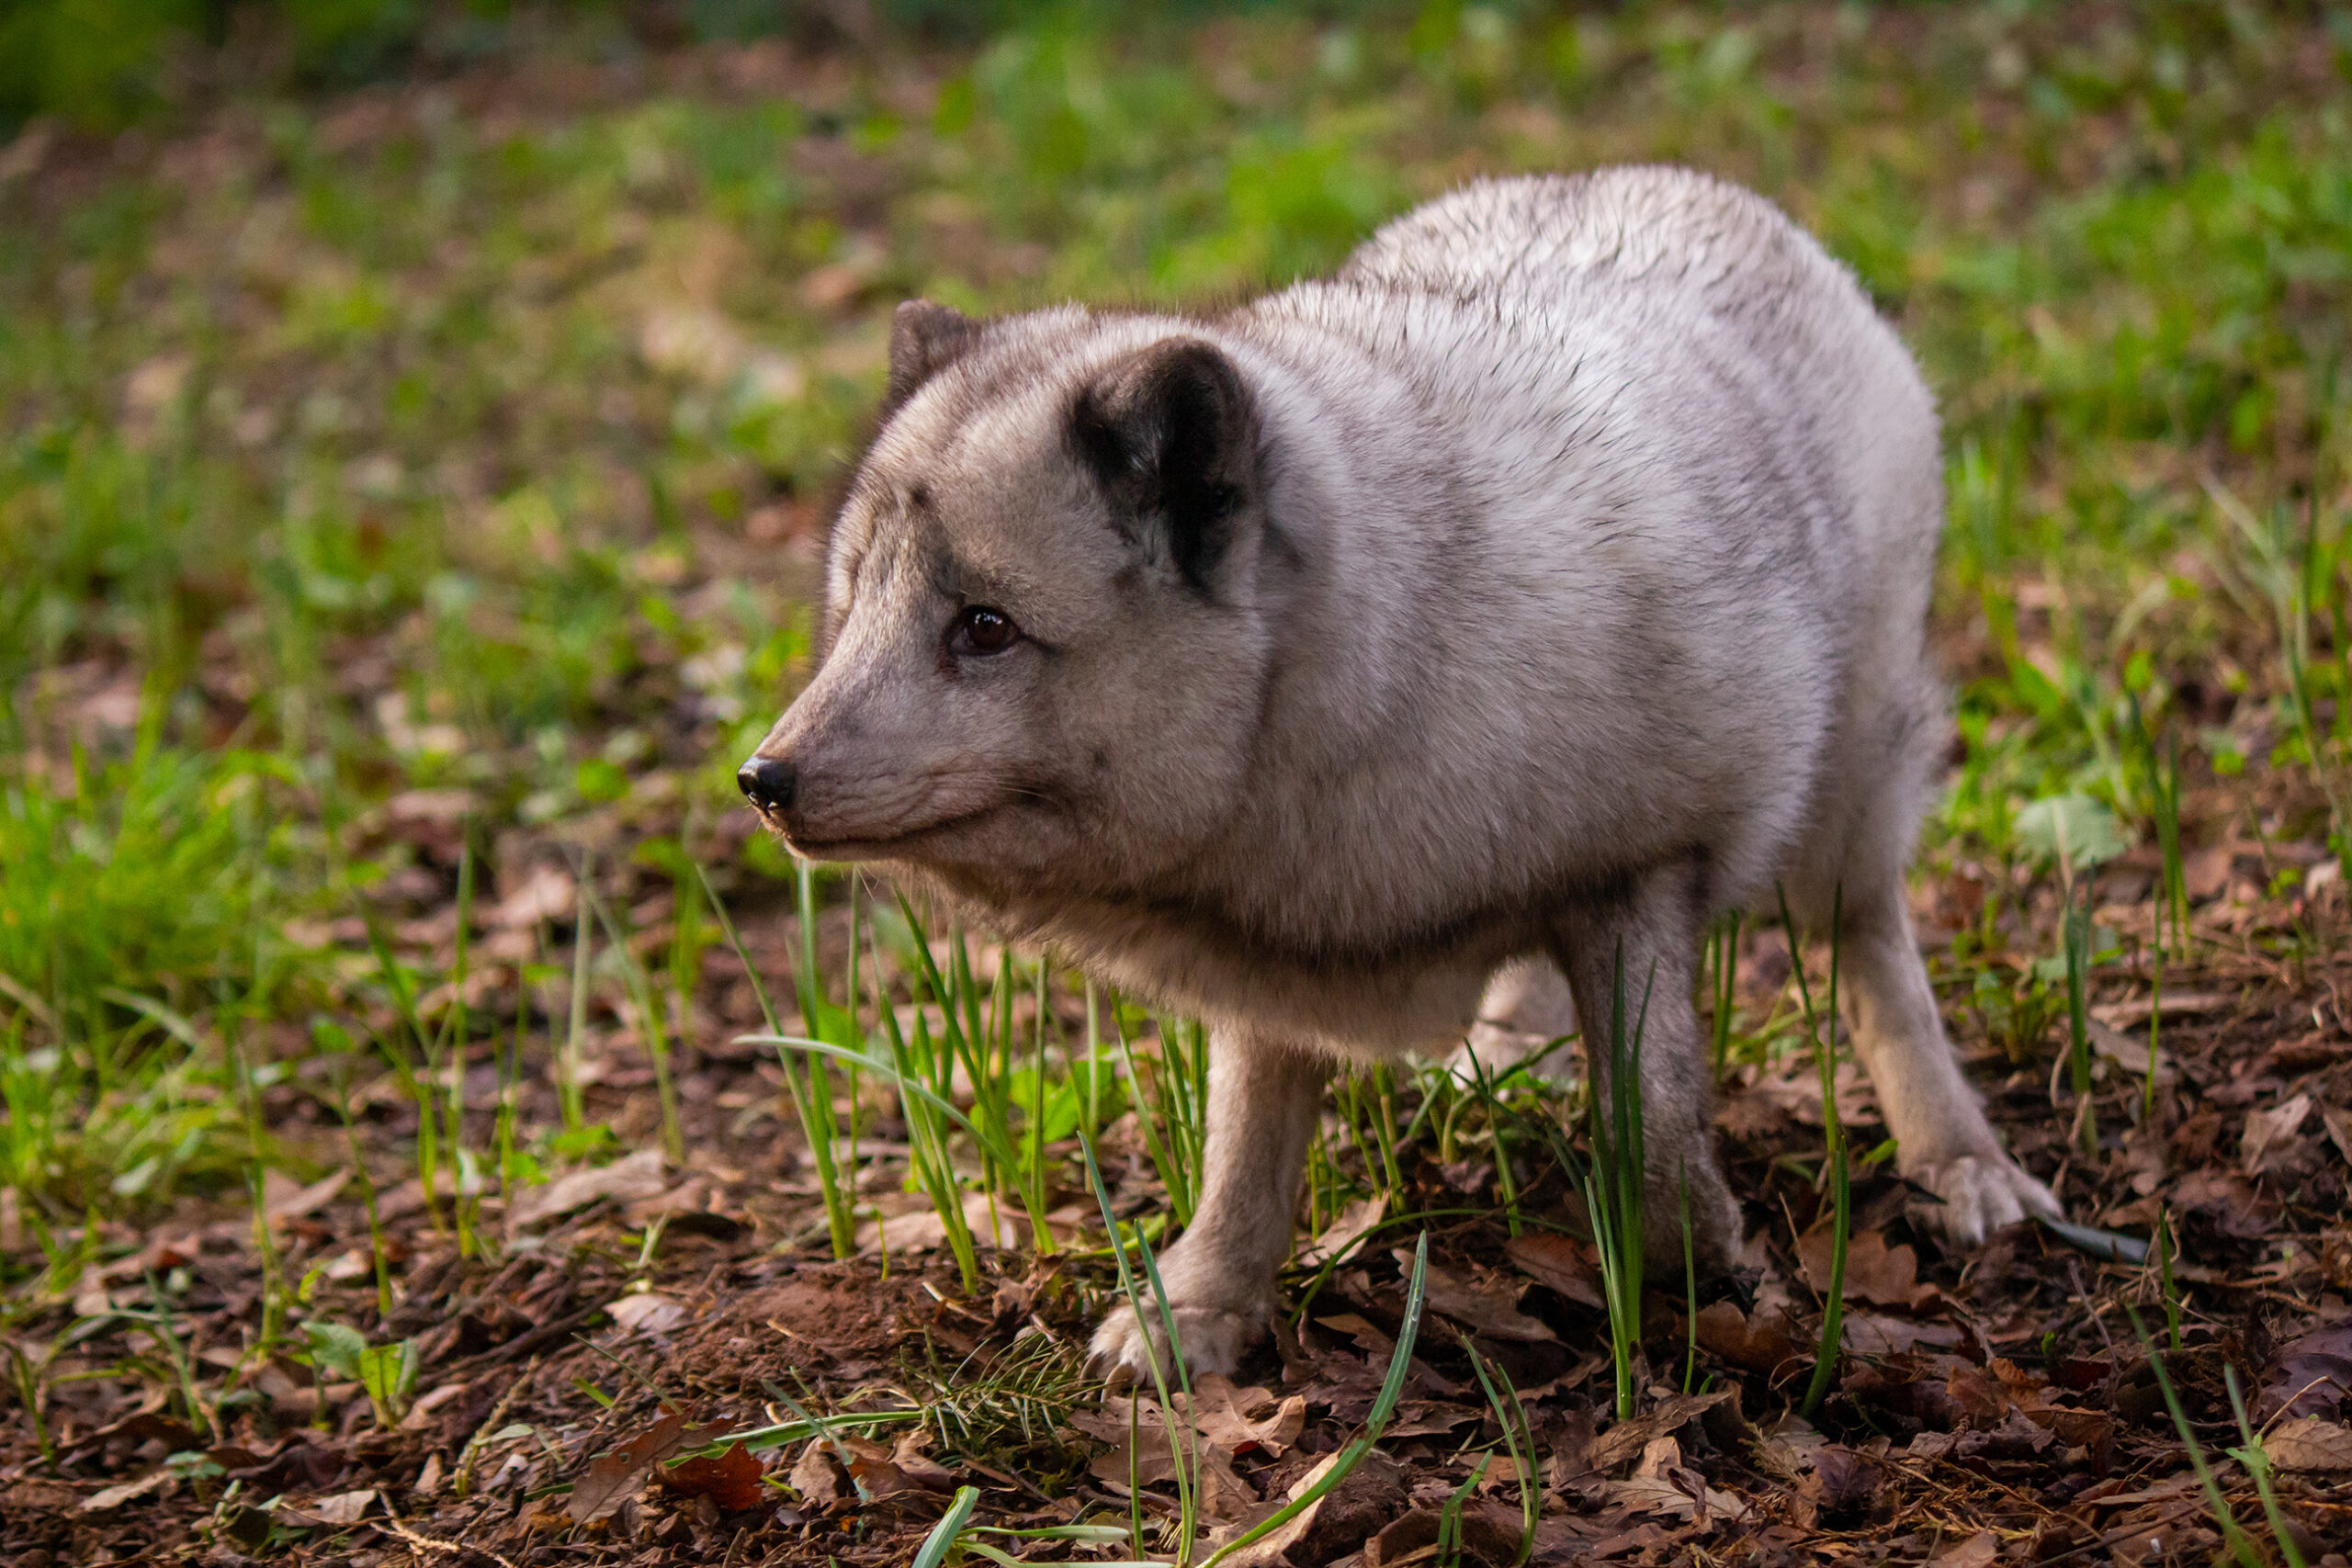 Arctic Fox at Wildwood Escot